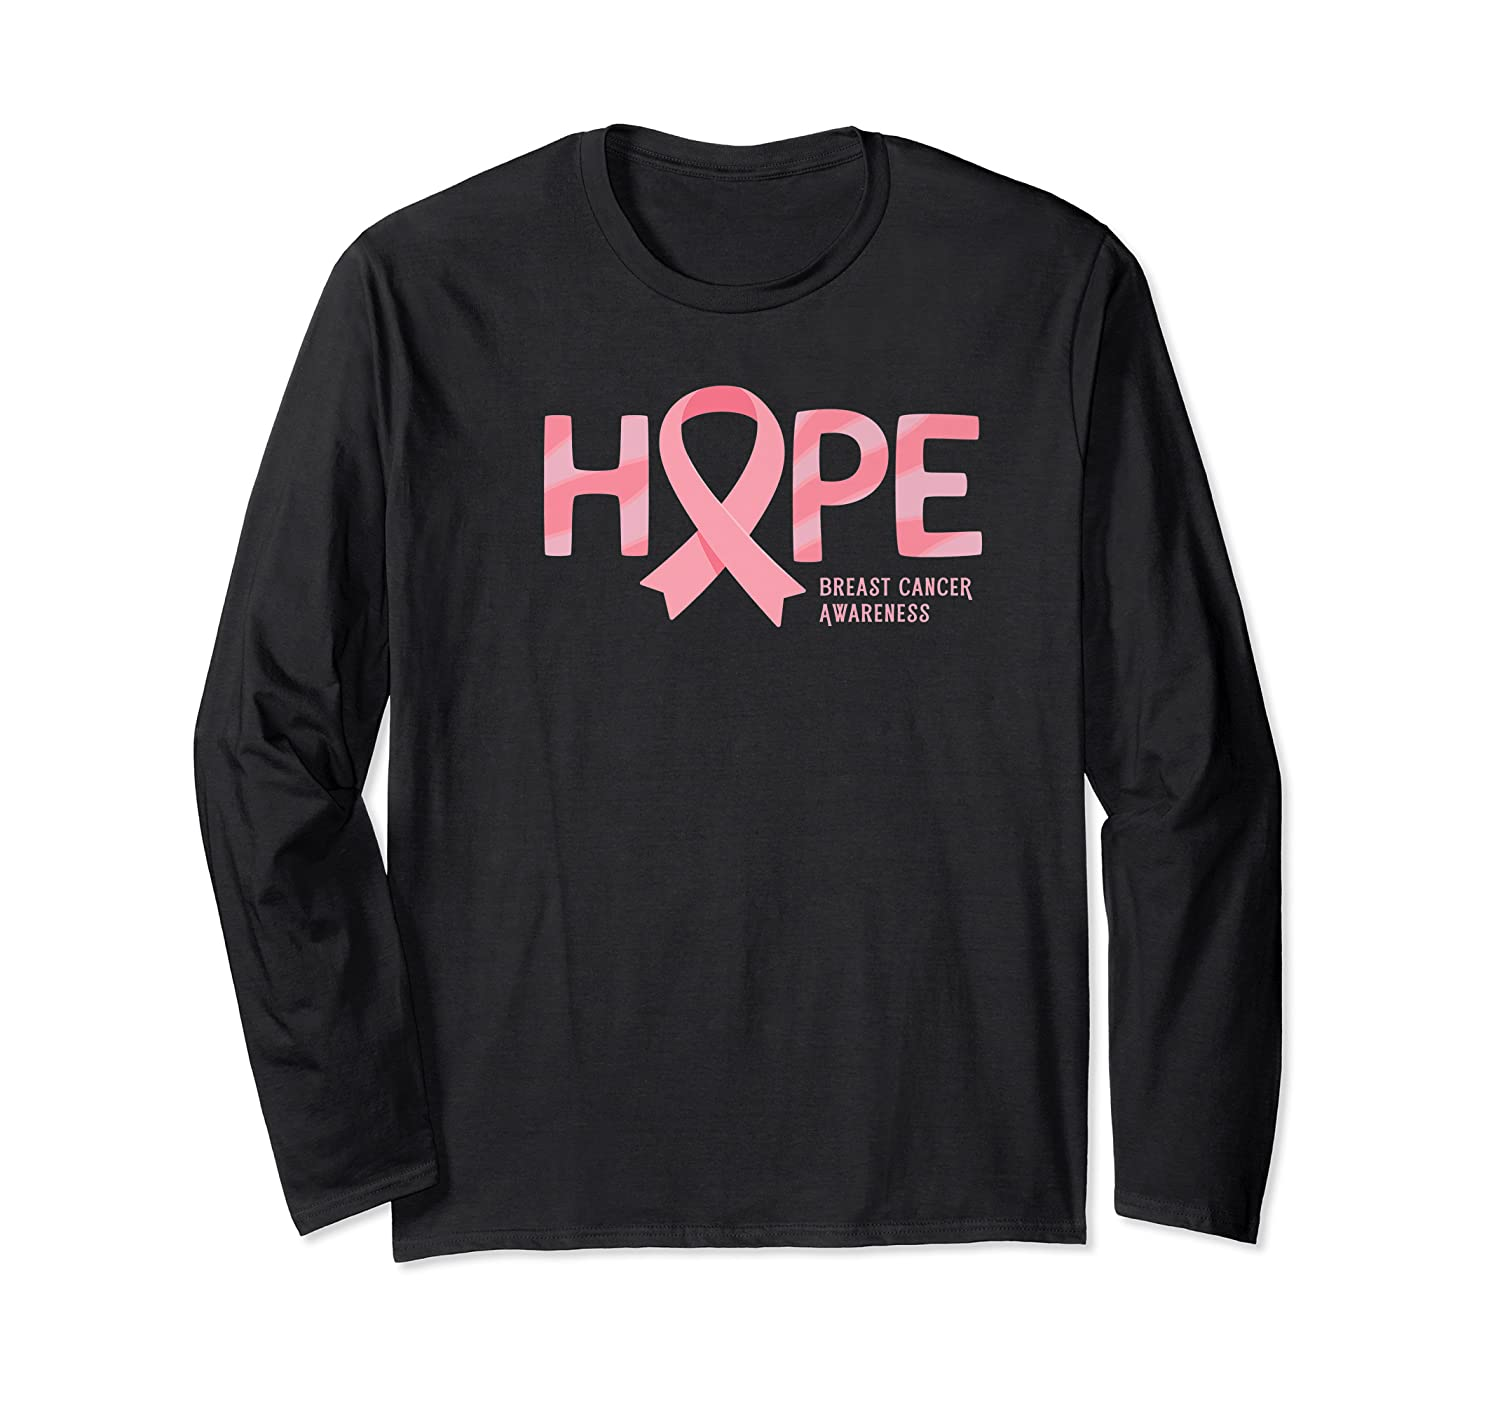 Have Hope Breast Cancer Awareness Month Support Team Premium T Shirt Long Sleeve T-shirt